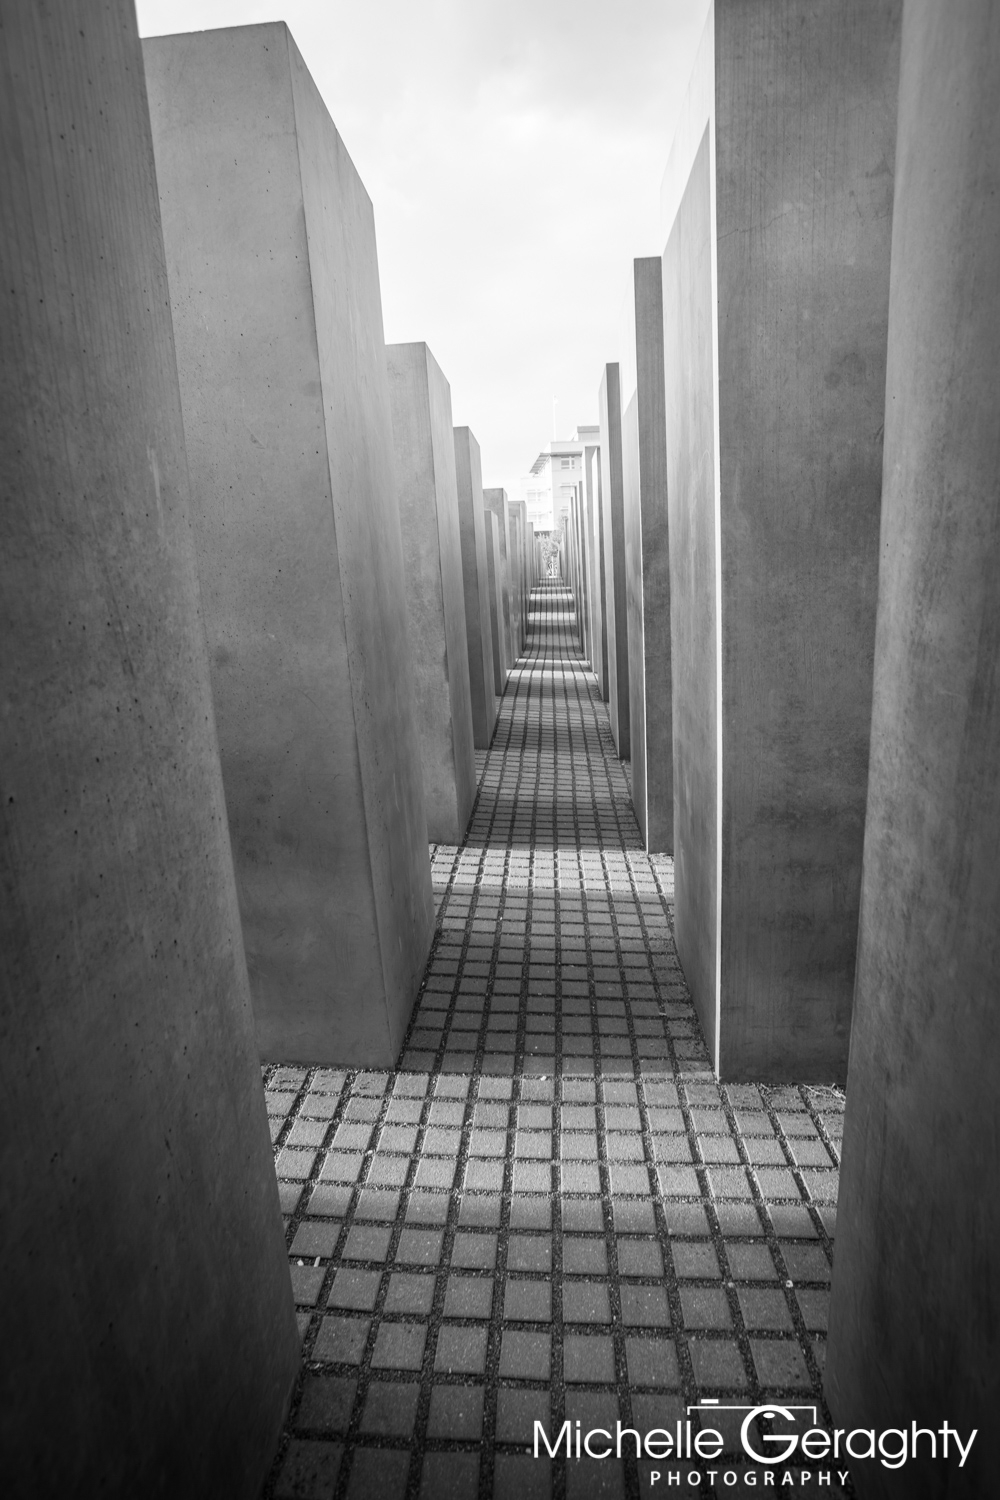 'Memorial to the Murdered Jews of Europe', Berlin, Germany